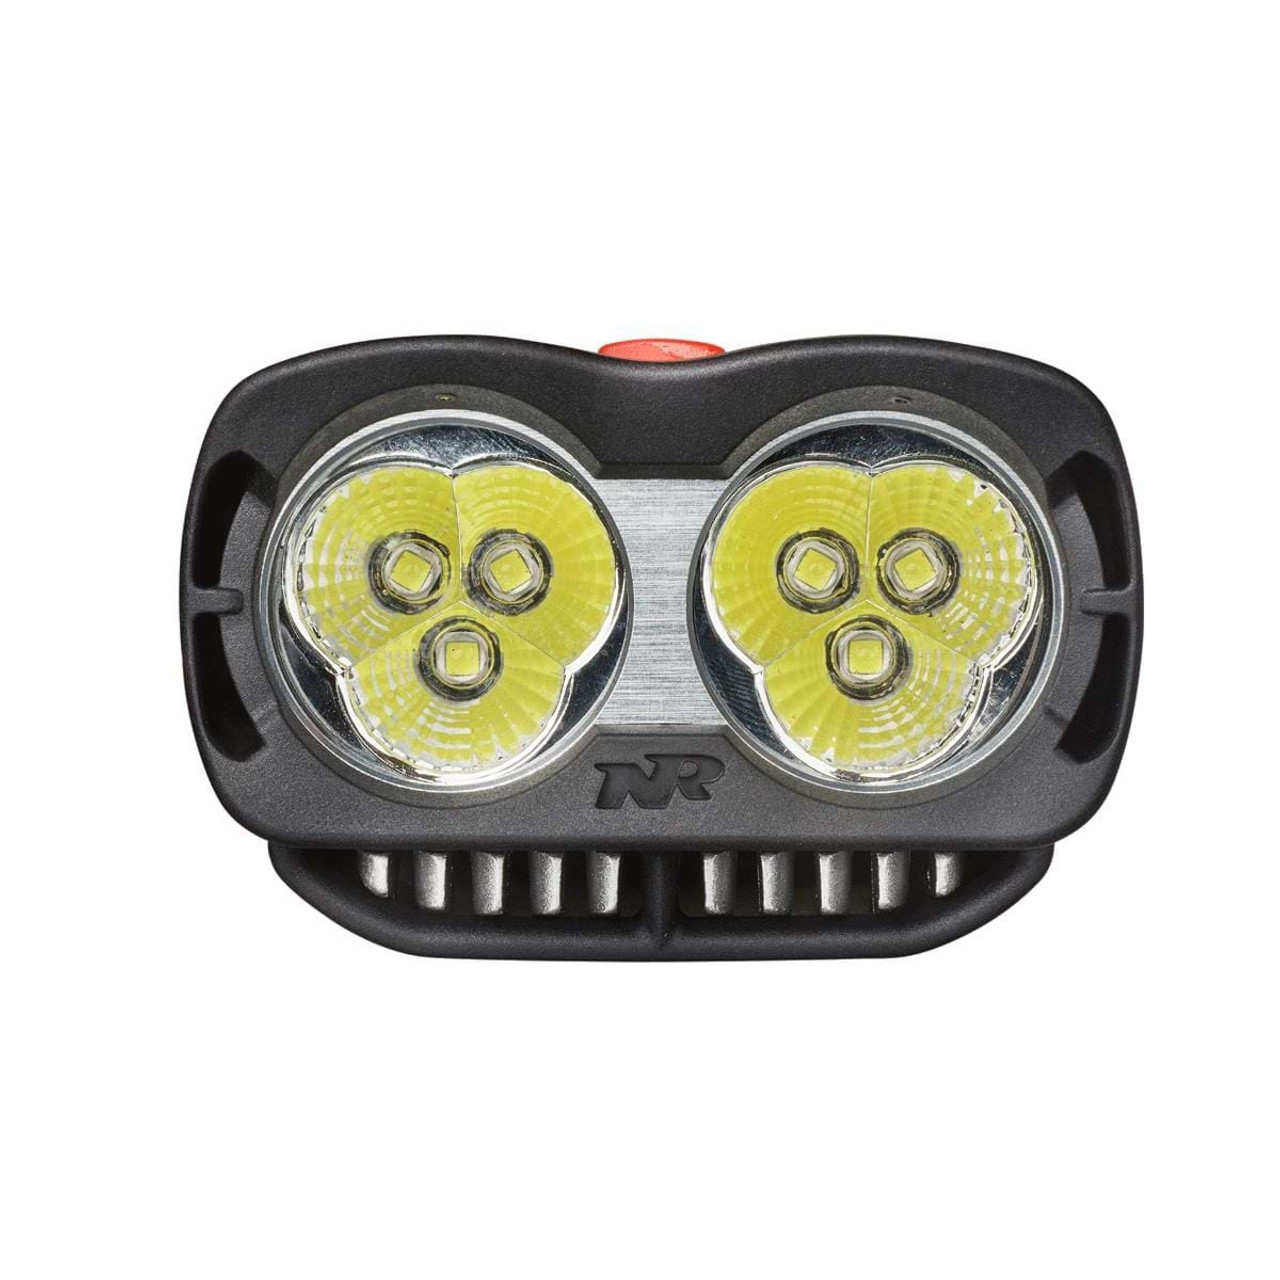 Niterider Pro 4200 Enduro Front Light With Mount And Charger RRP £425